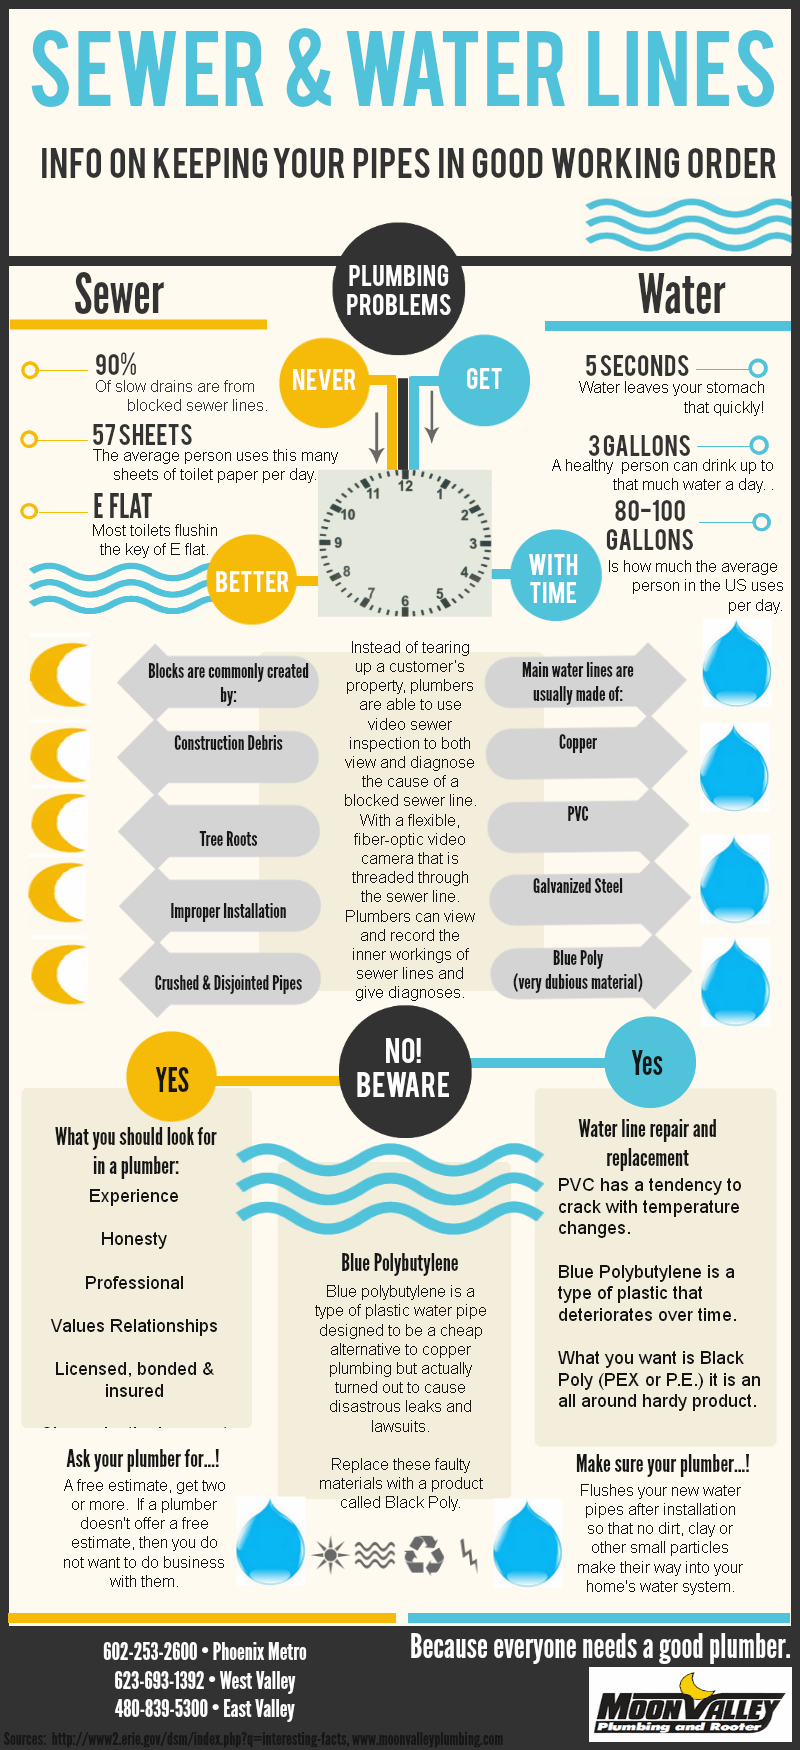 Sewer Water Lines Info On Keeping Your Pipes In Good Working Order Pinned By Bodek Inc Local Plumbers Plumber Infographic